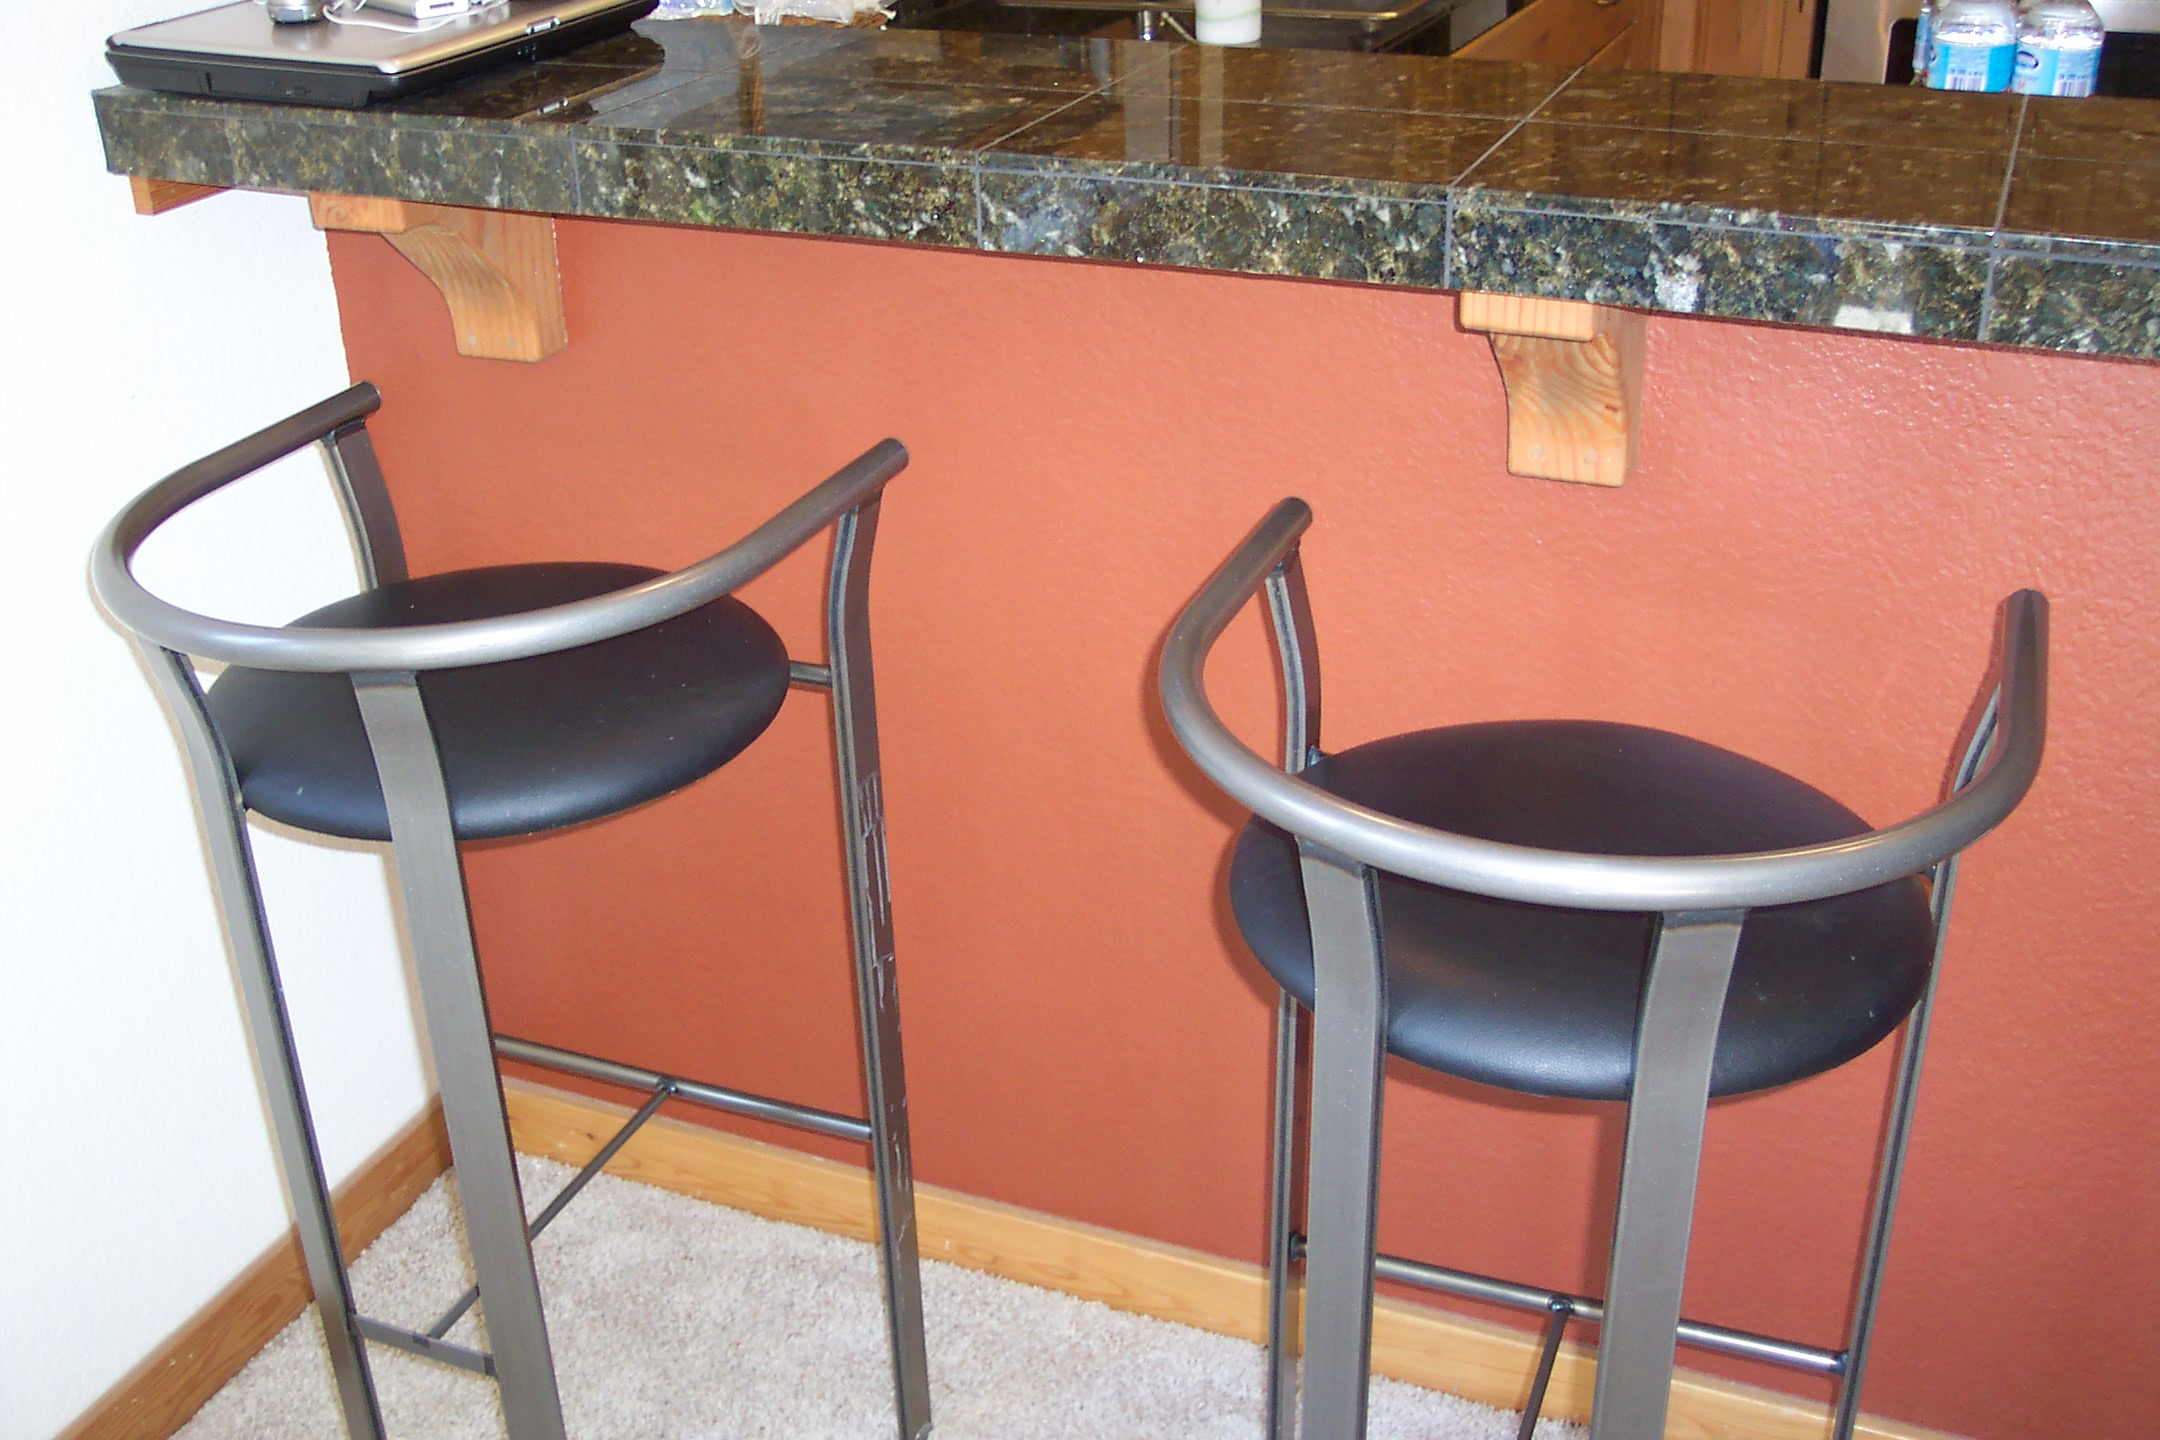 Bar stools for kitchen Photo - 4